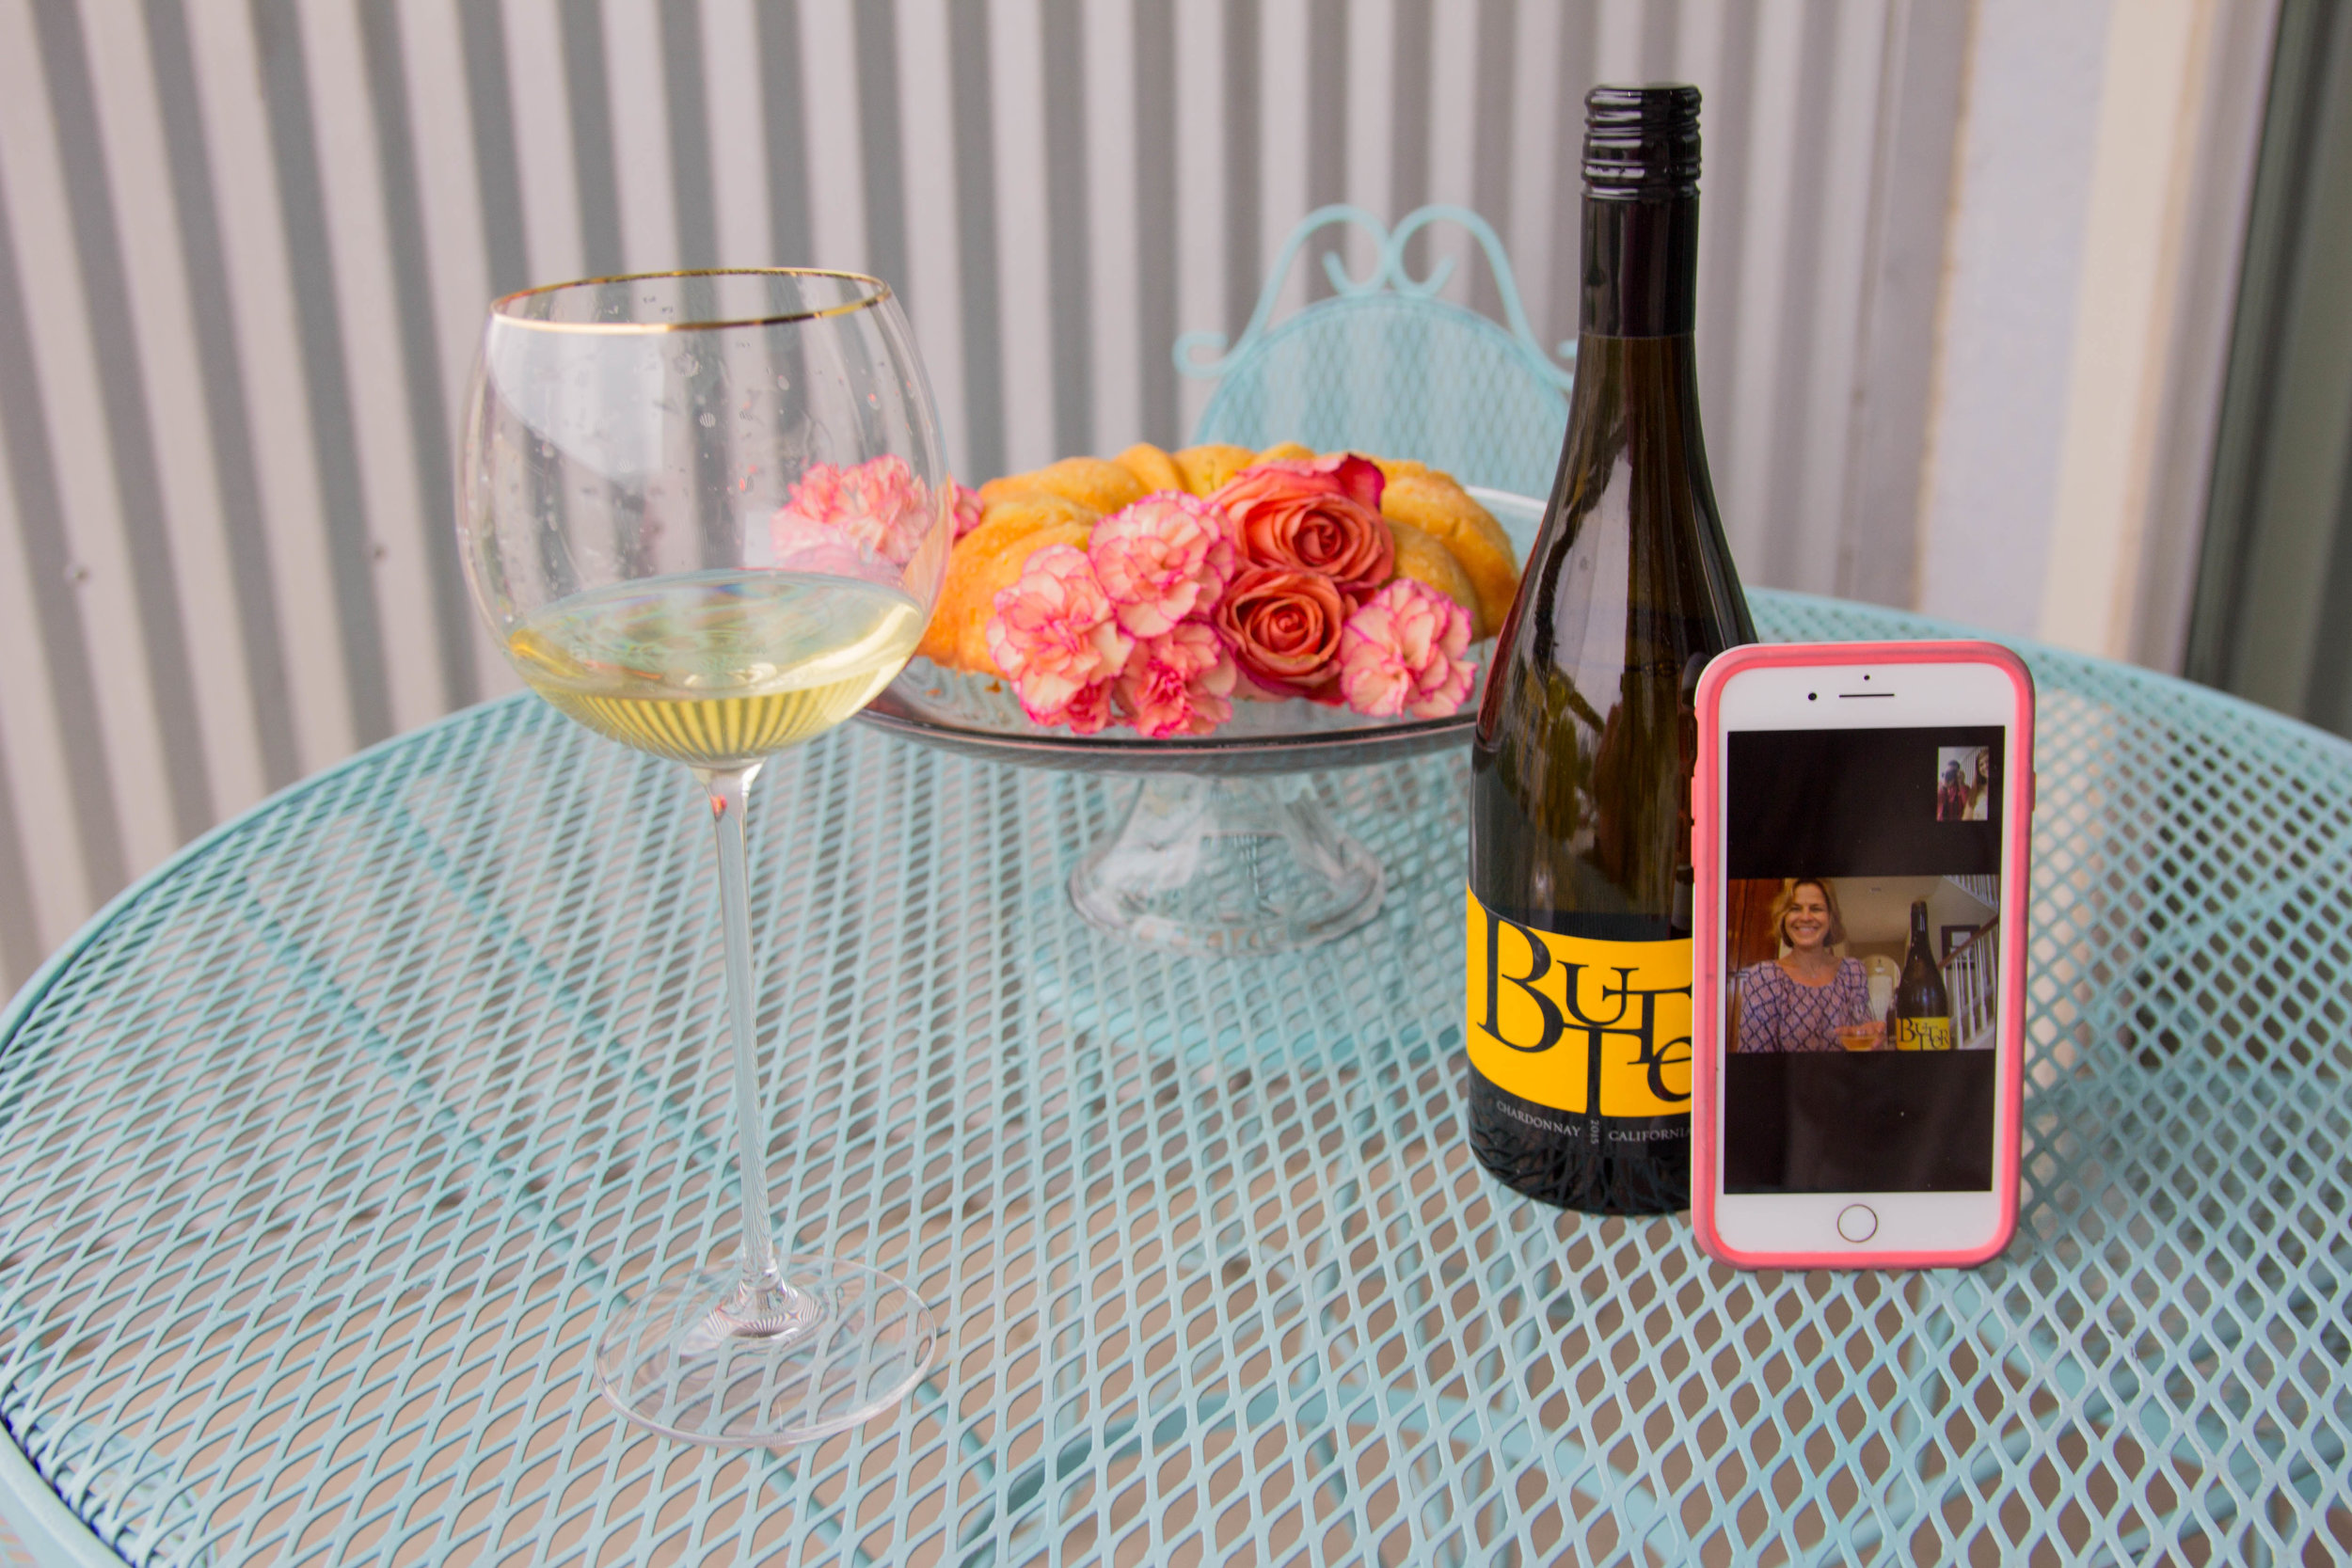 JaM Cellars Butter Chardonnay, Napa Wine, mother's day, cheers to mother in laws, bed bath and beyond tall wine glasses, lemon pound cake, the perfect mother in law gift, otterbox,